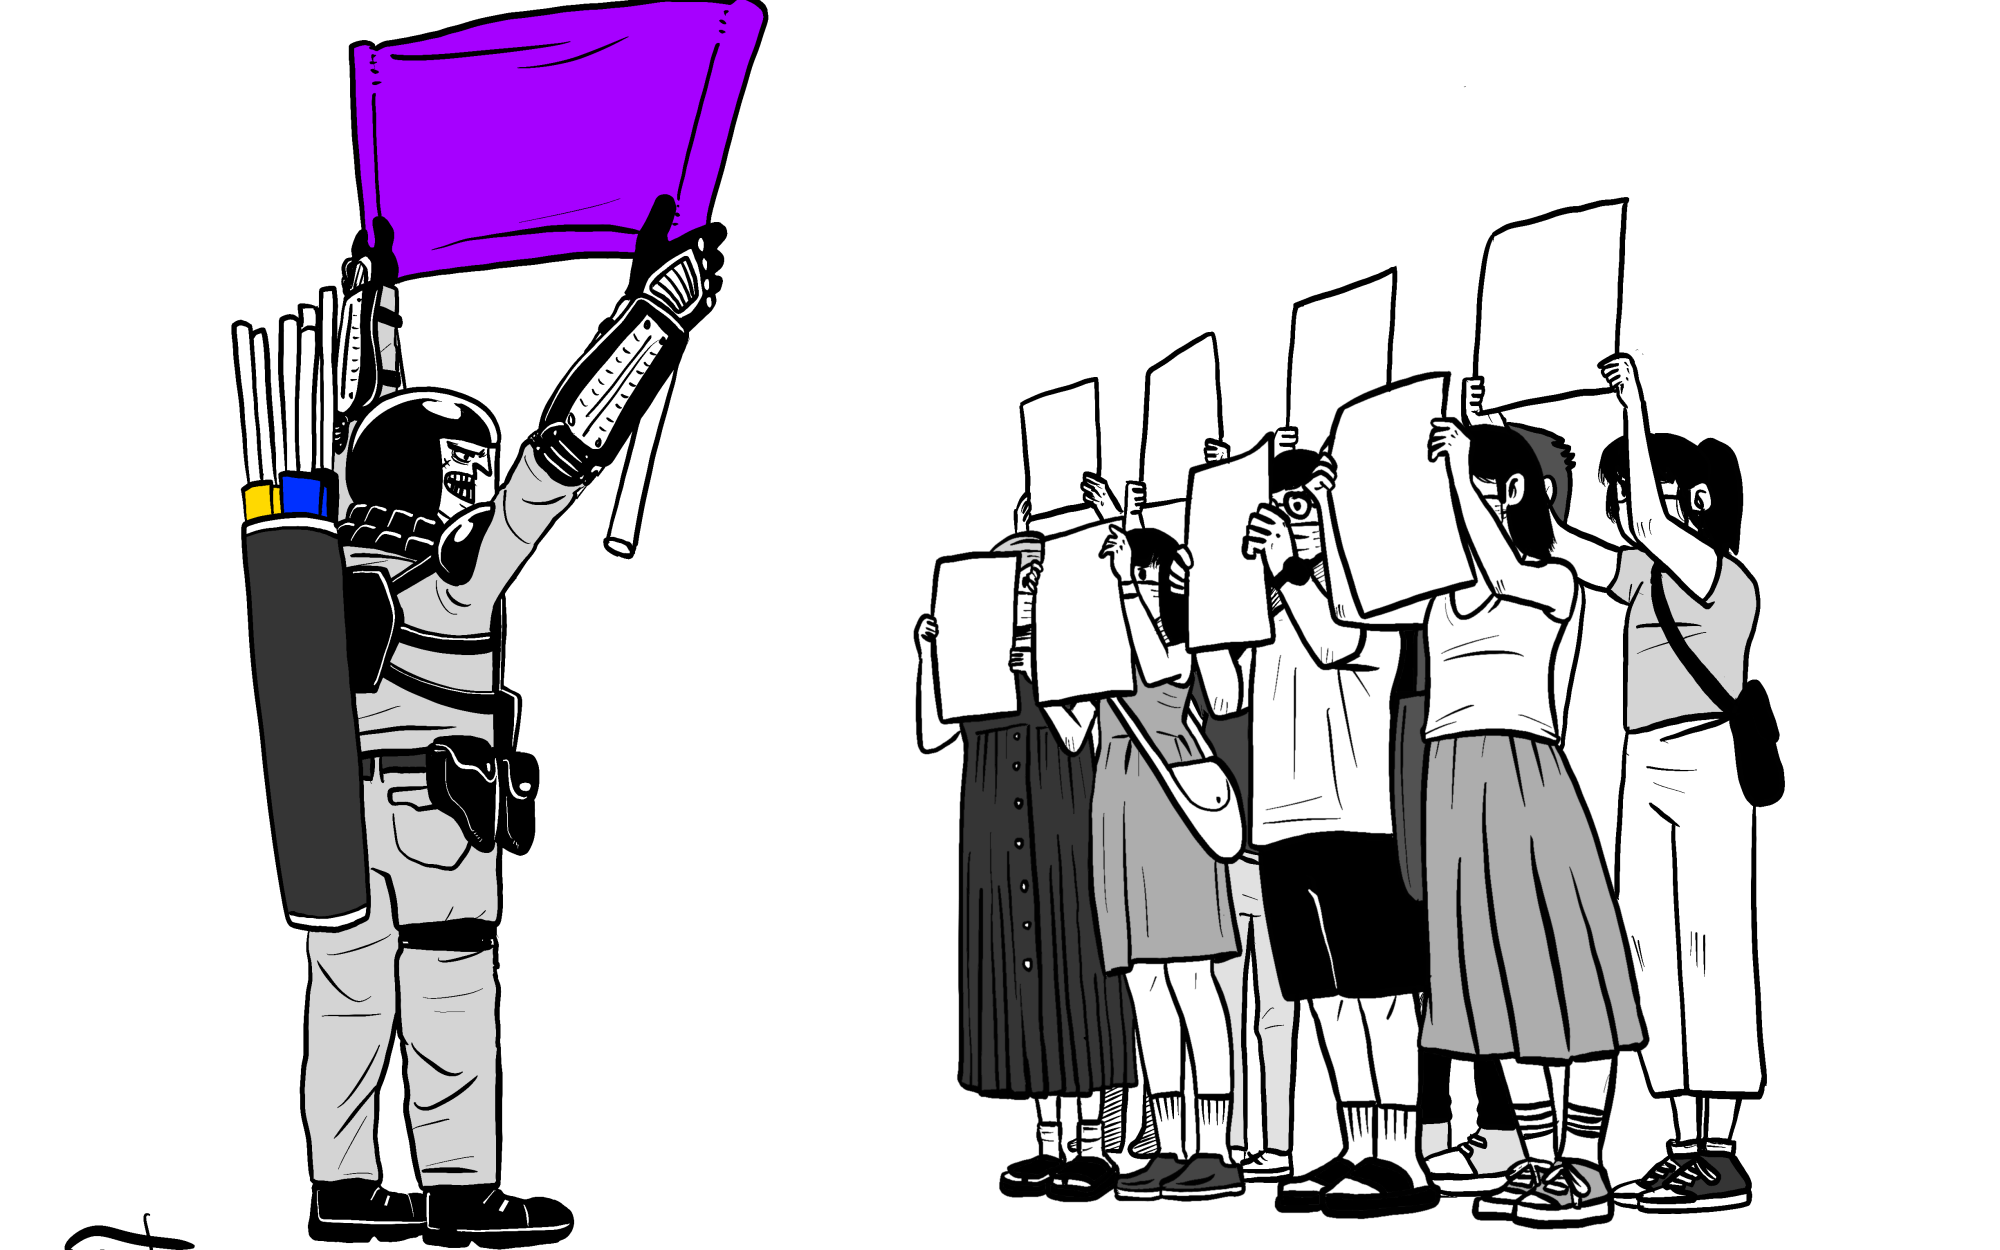 A cartoon by Hong Kong artist Kit Man depicts protesters facing police with blank sheets of paper.